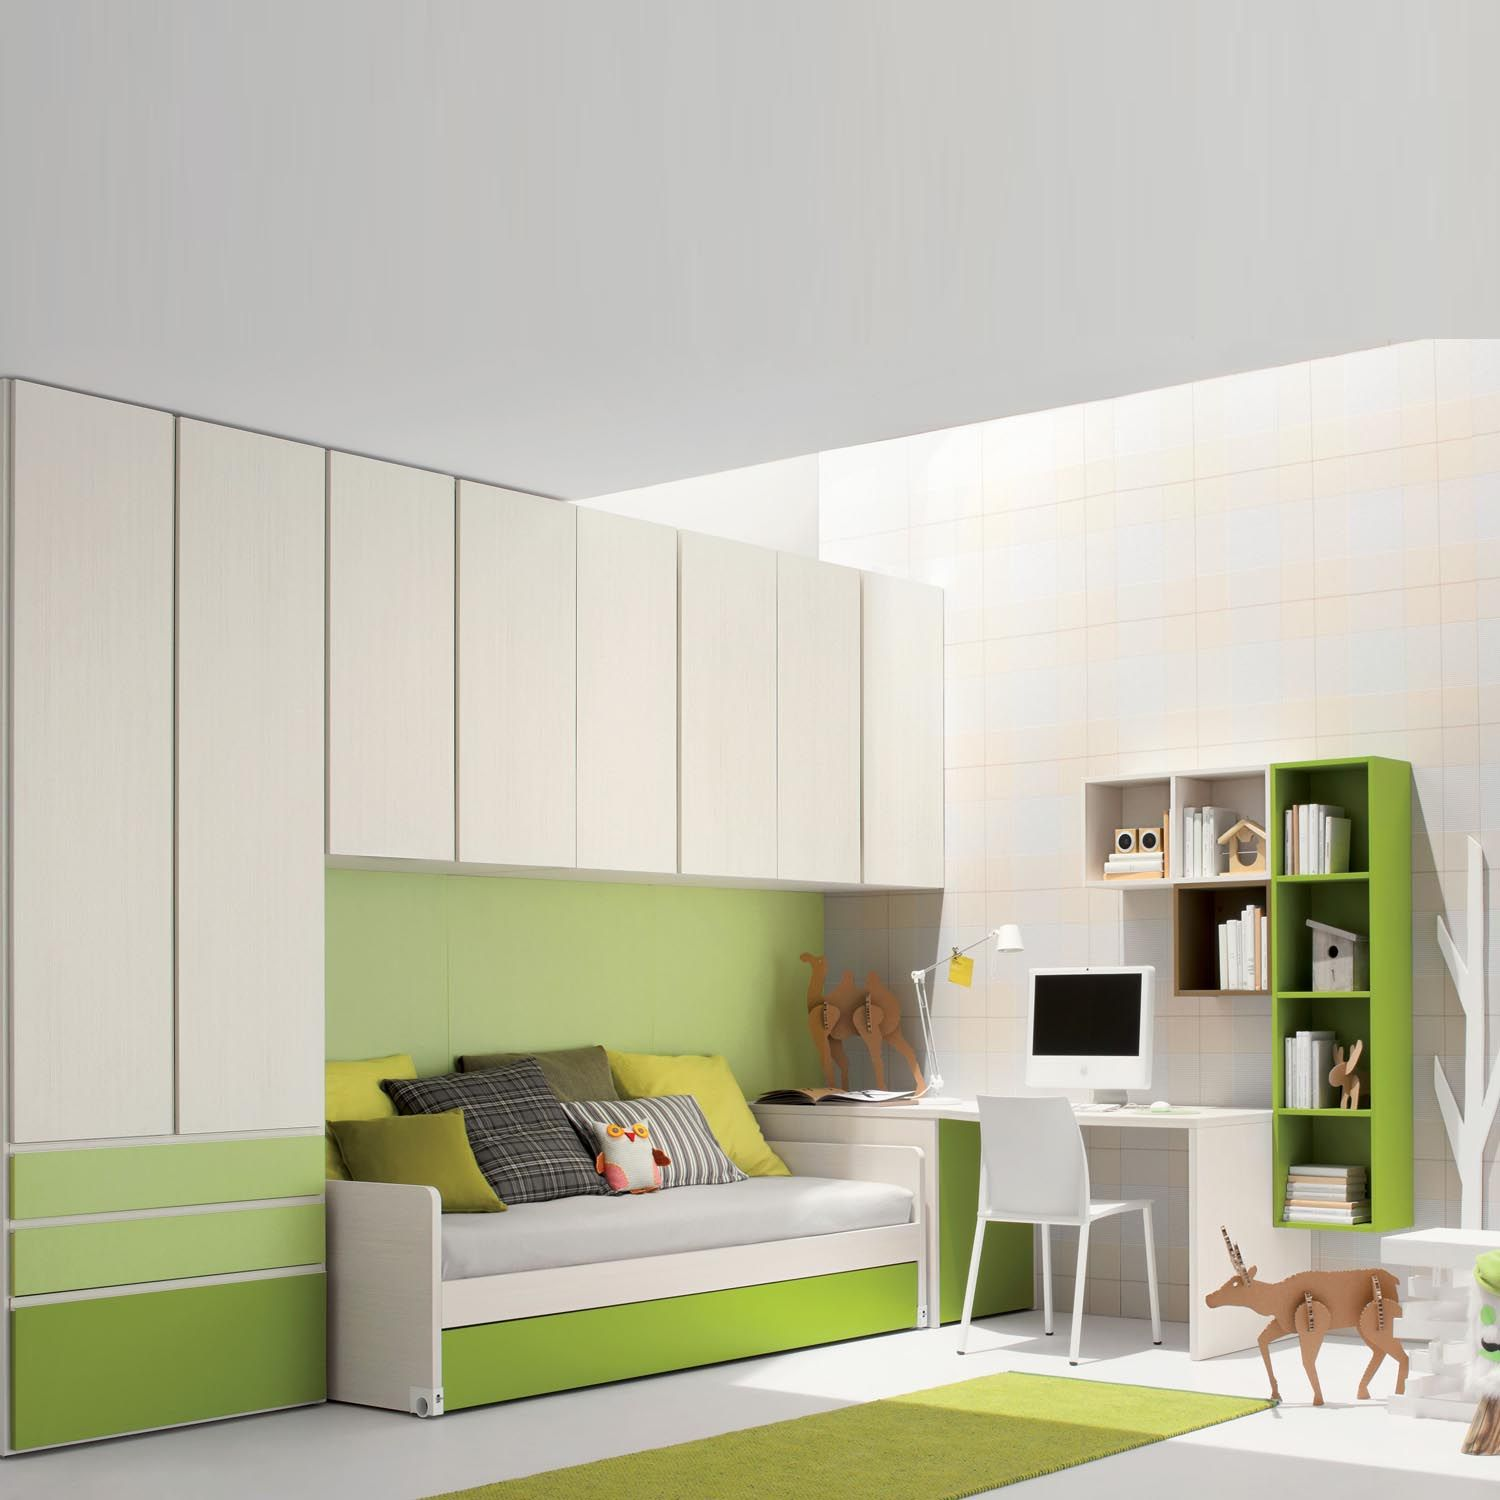 contemporary kids bedroom furniture green. Stackable Chairs Again You Can Use Minimum Amount Space Saving Bedroom Furniture Furniturea Contemporary Kids Green D